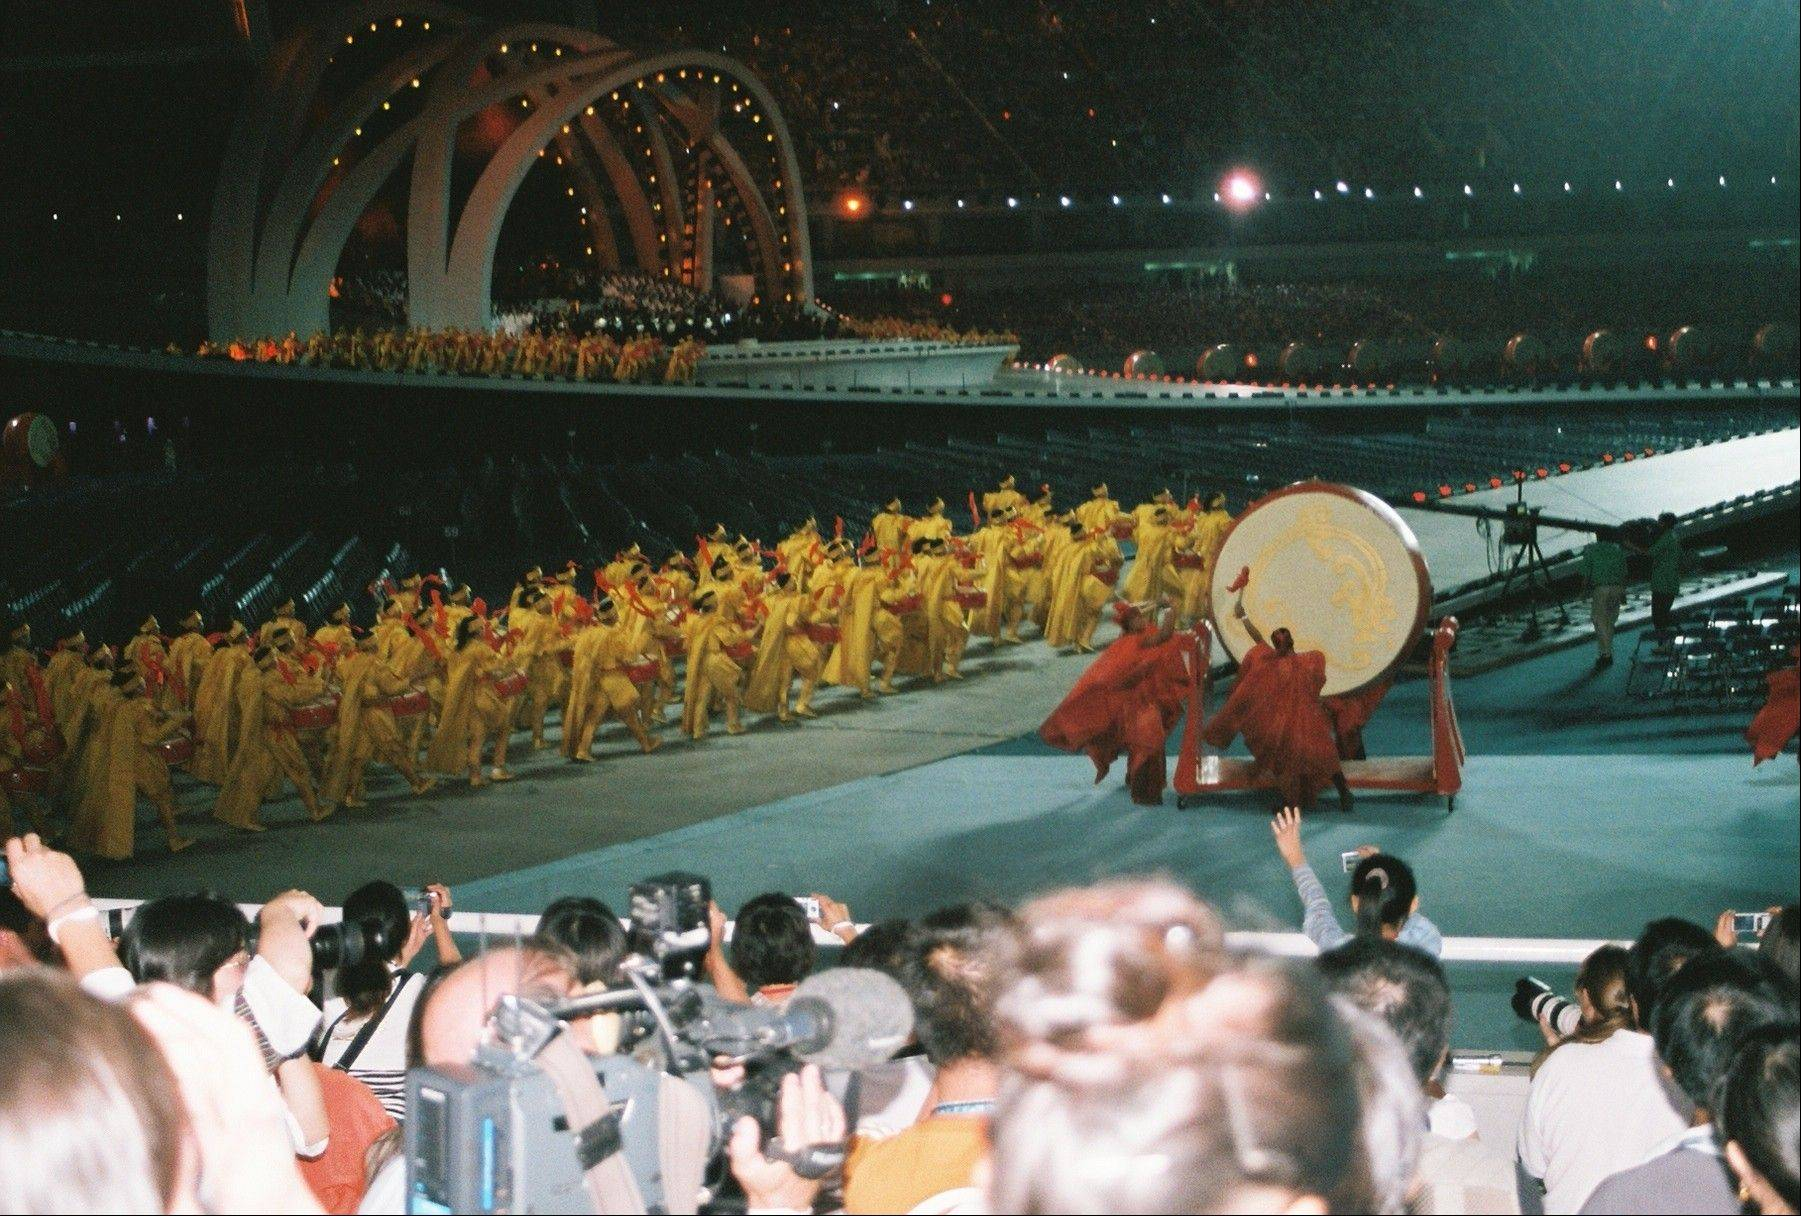 The opening ceremonies of the 2007 Special Olympics World Summer Games in Shanghai, China -- the last time a Special Olympics World Games was held in Asia.